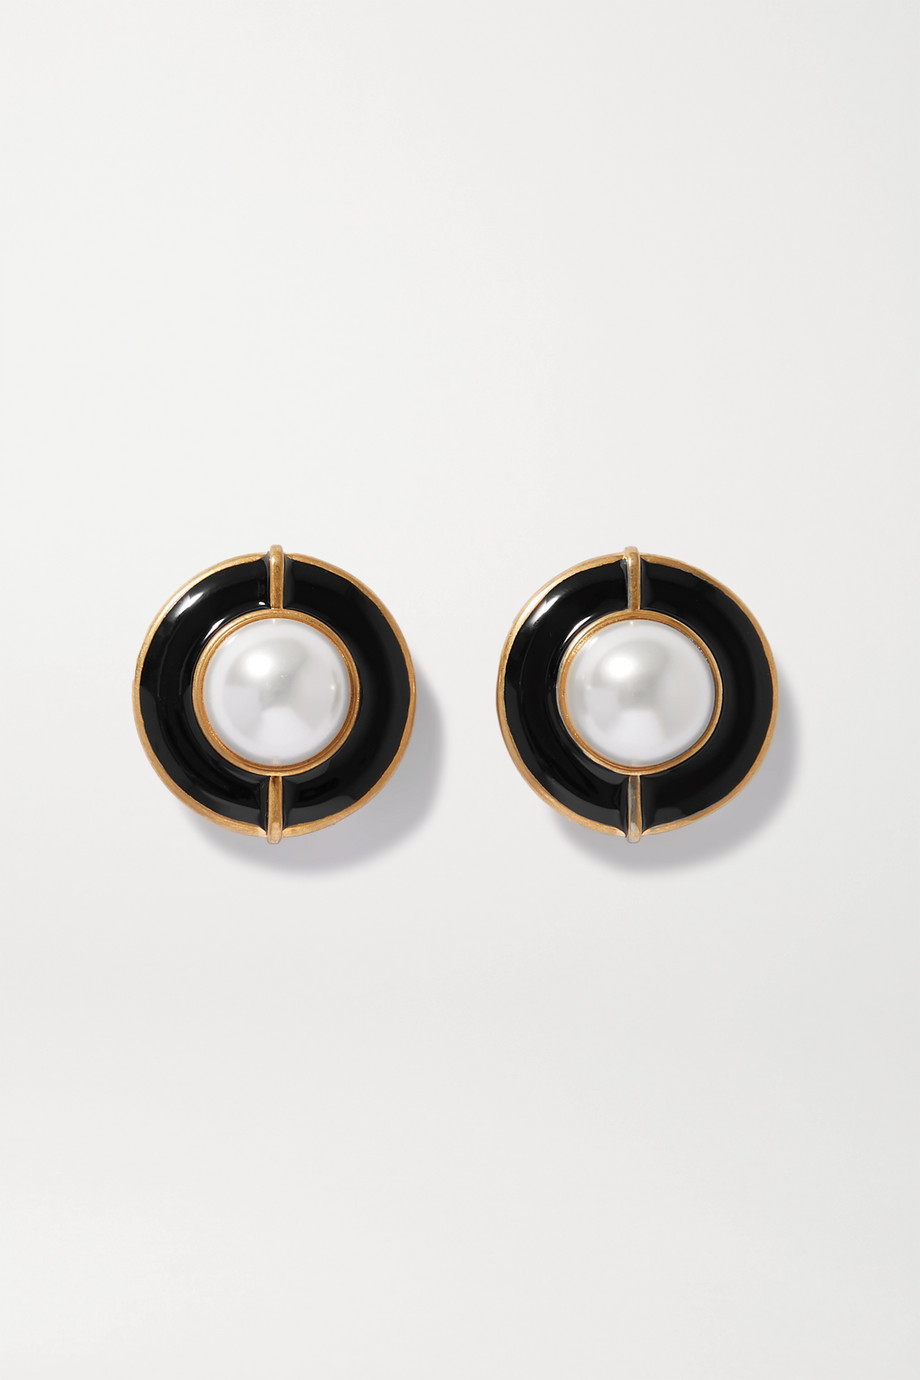 SAINT LAURENT Gold-tone, enamel and faux pearl clip earrings